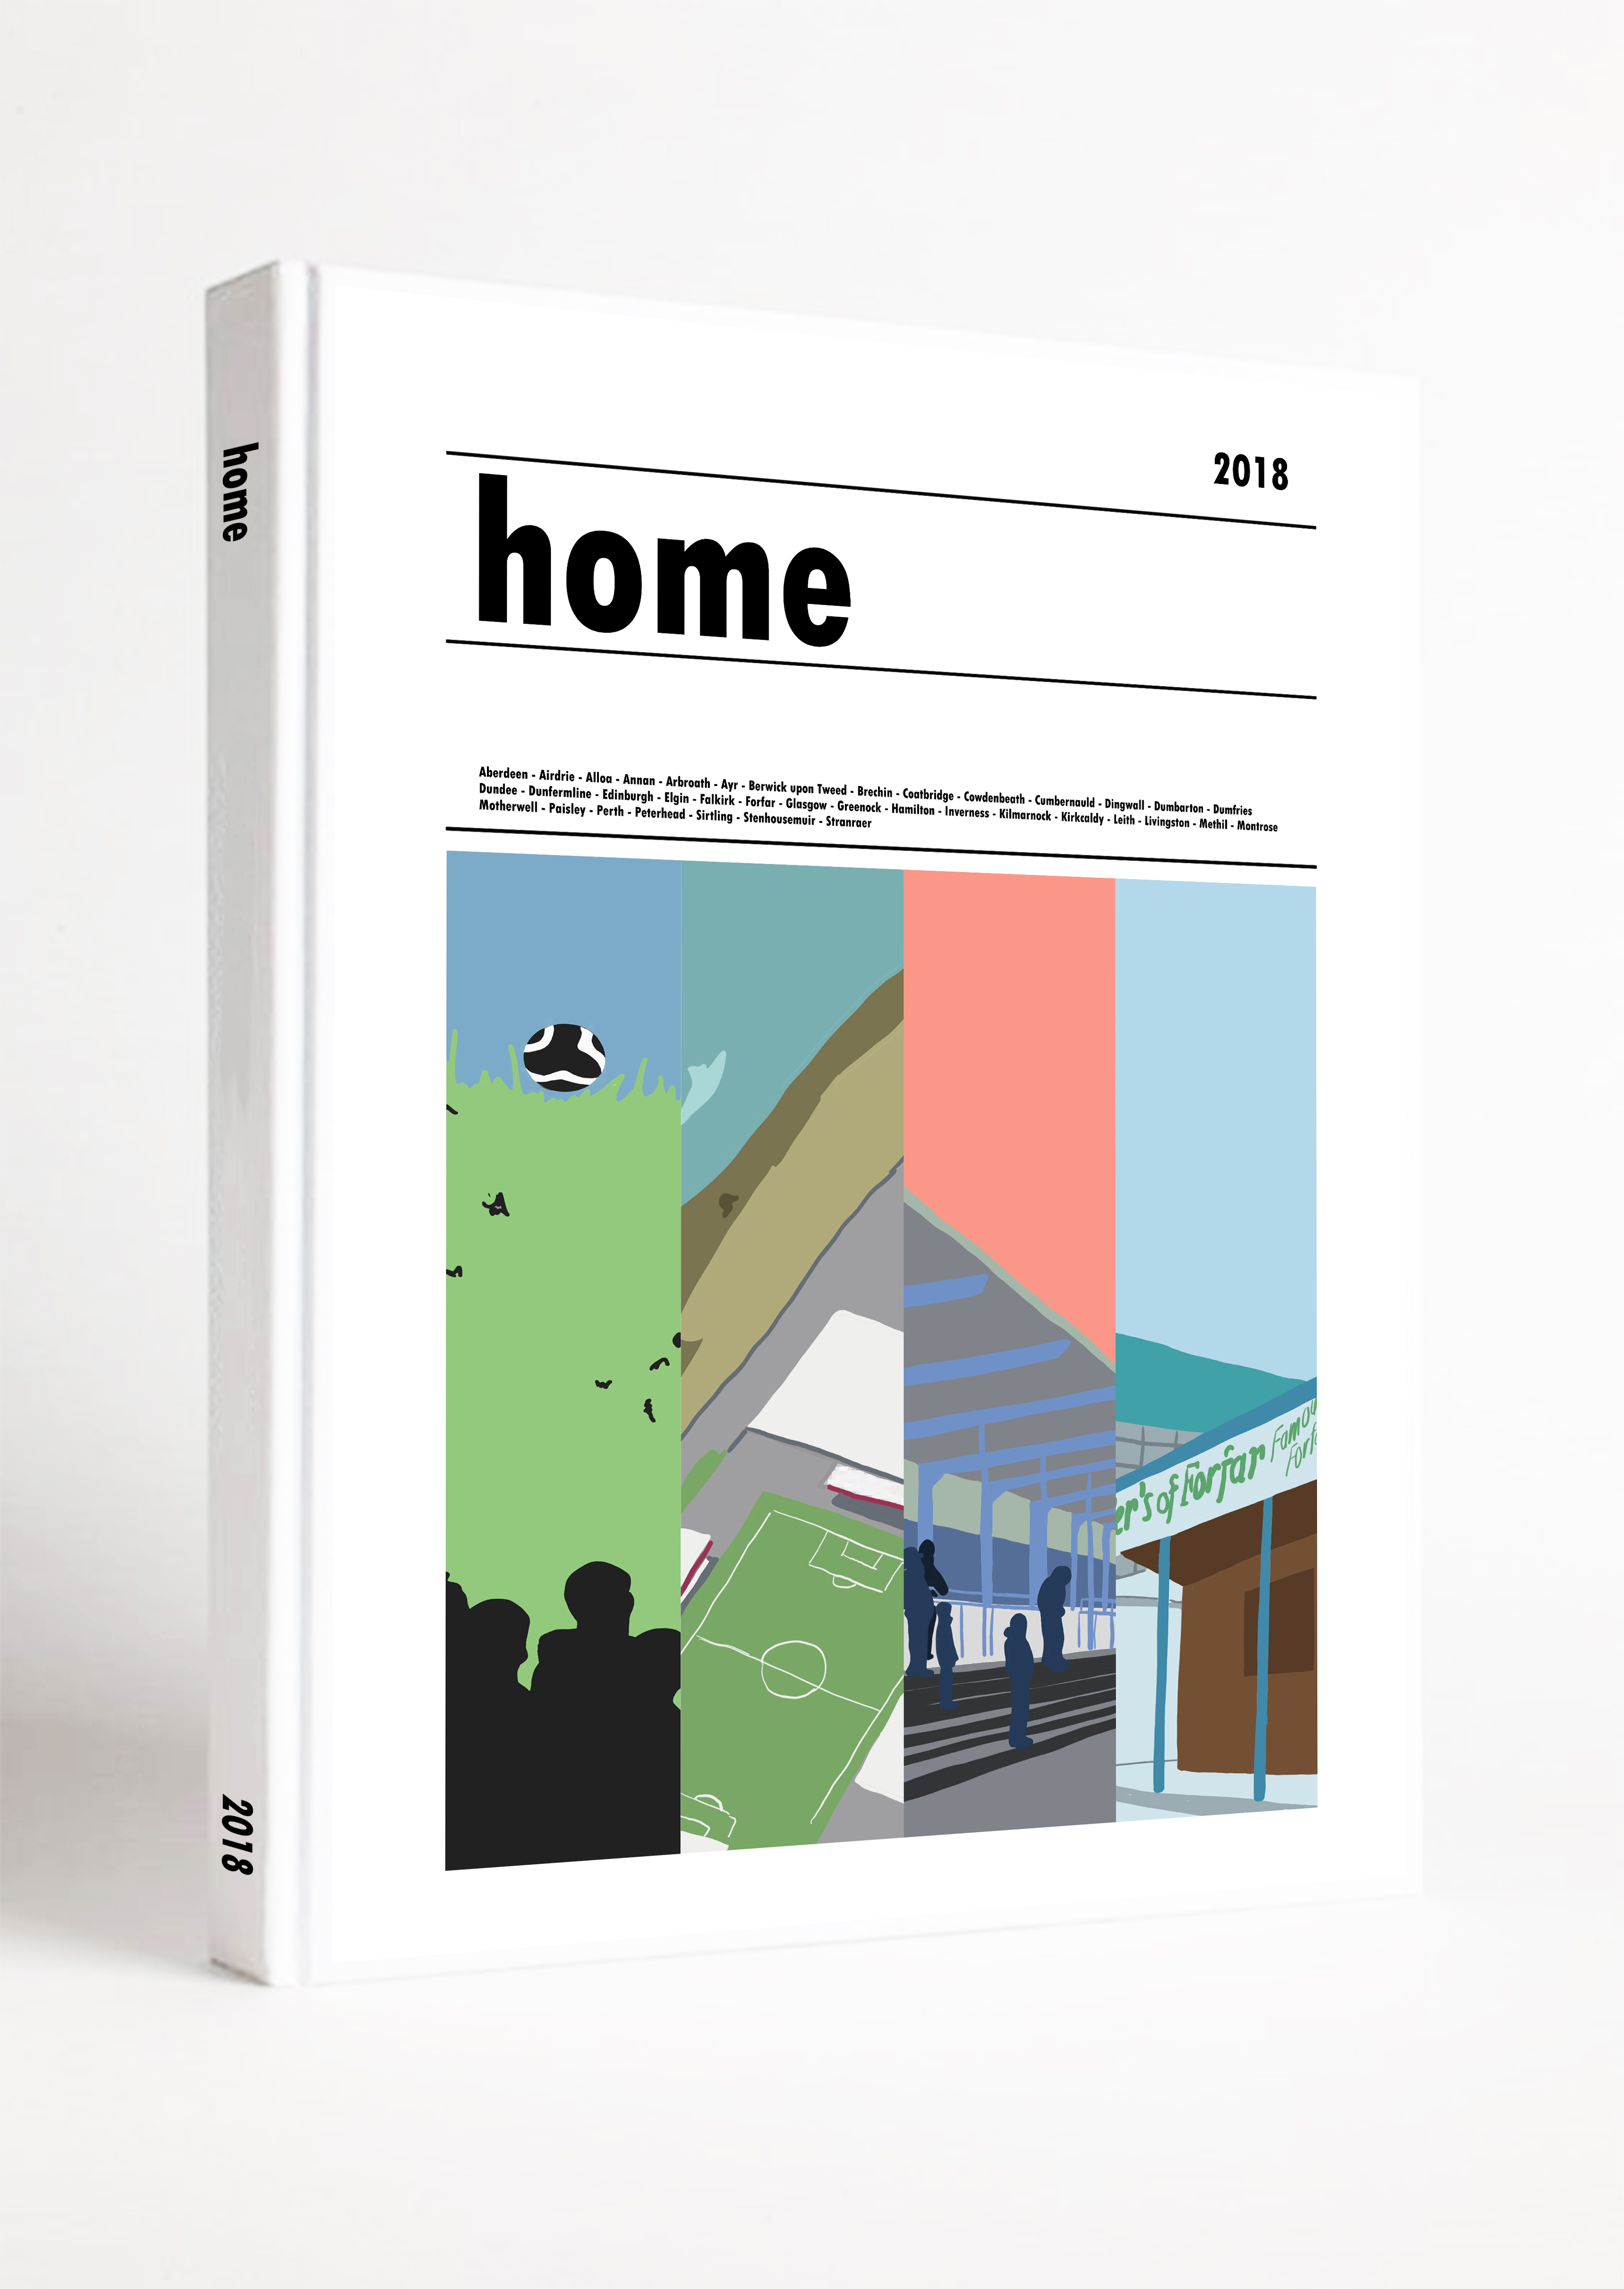 Home, the Book